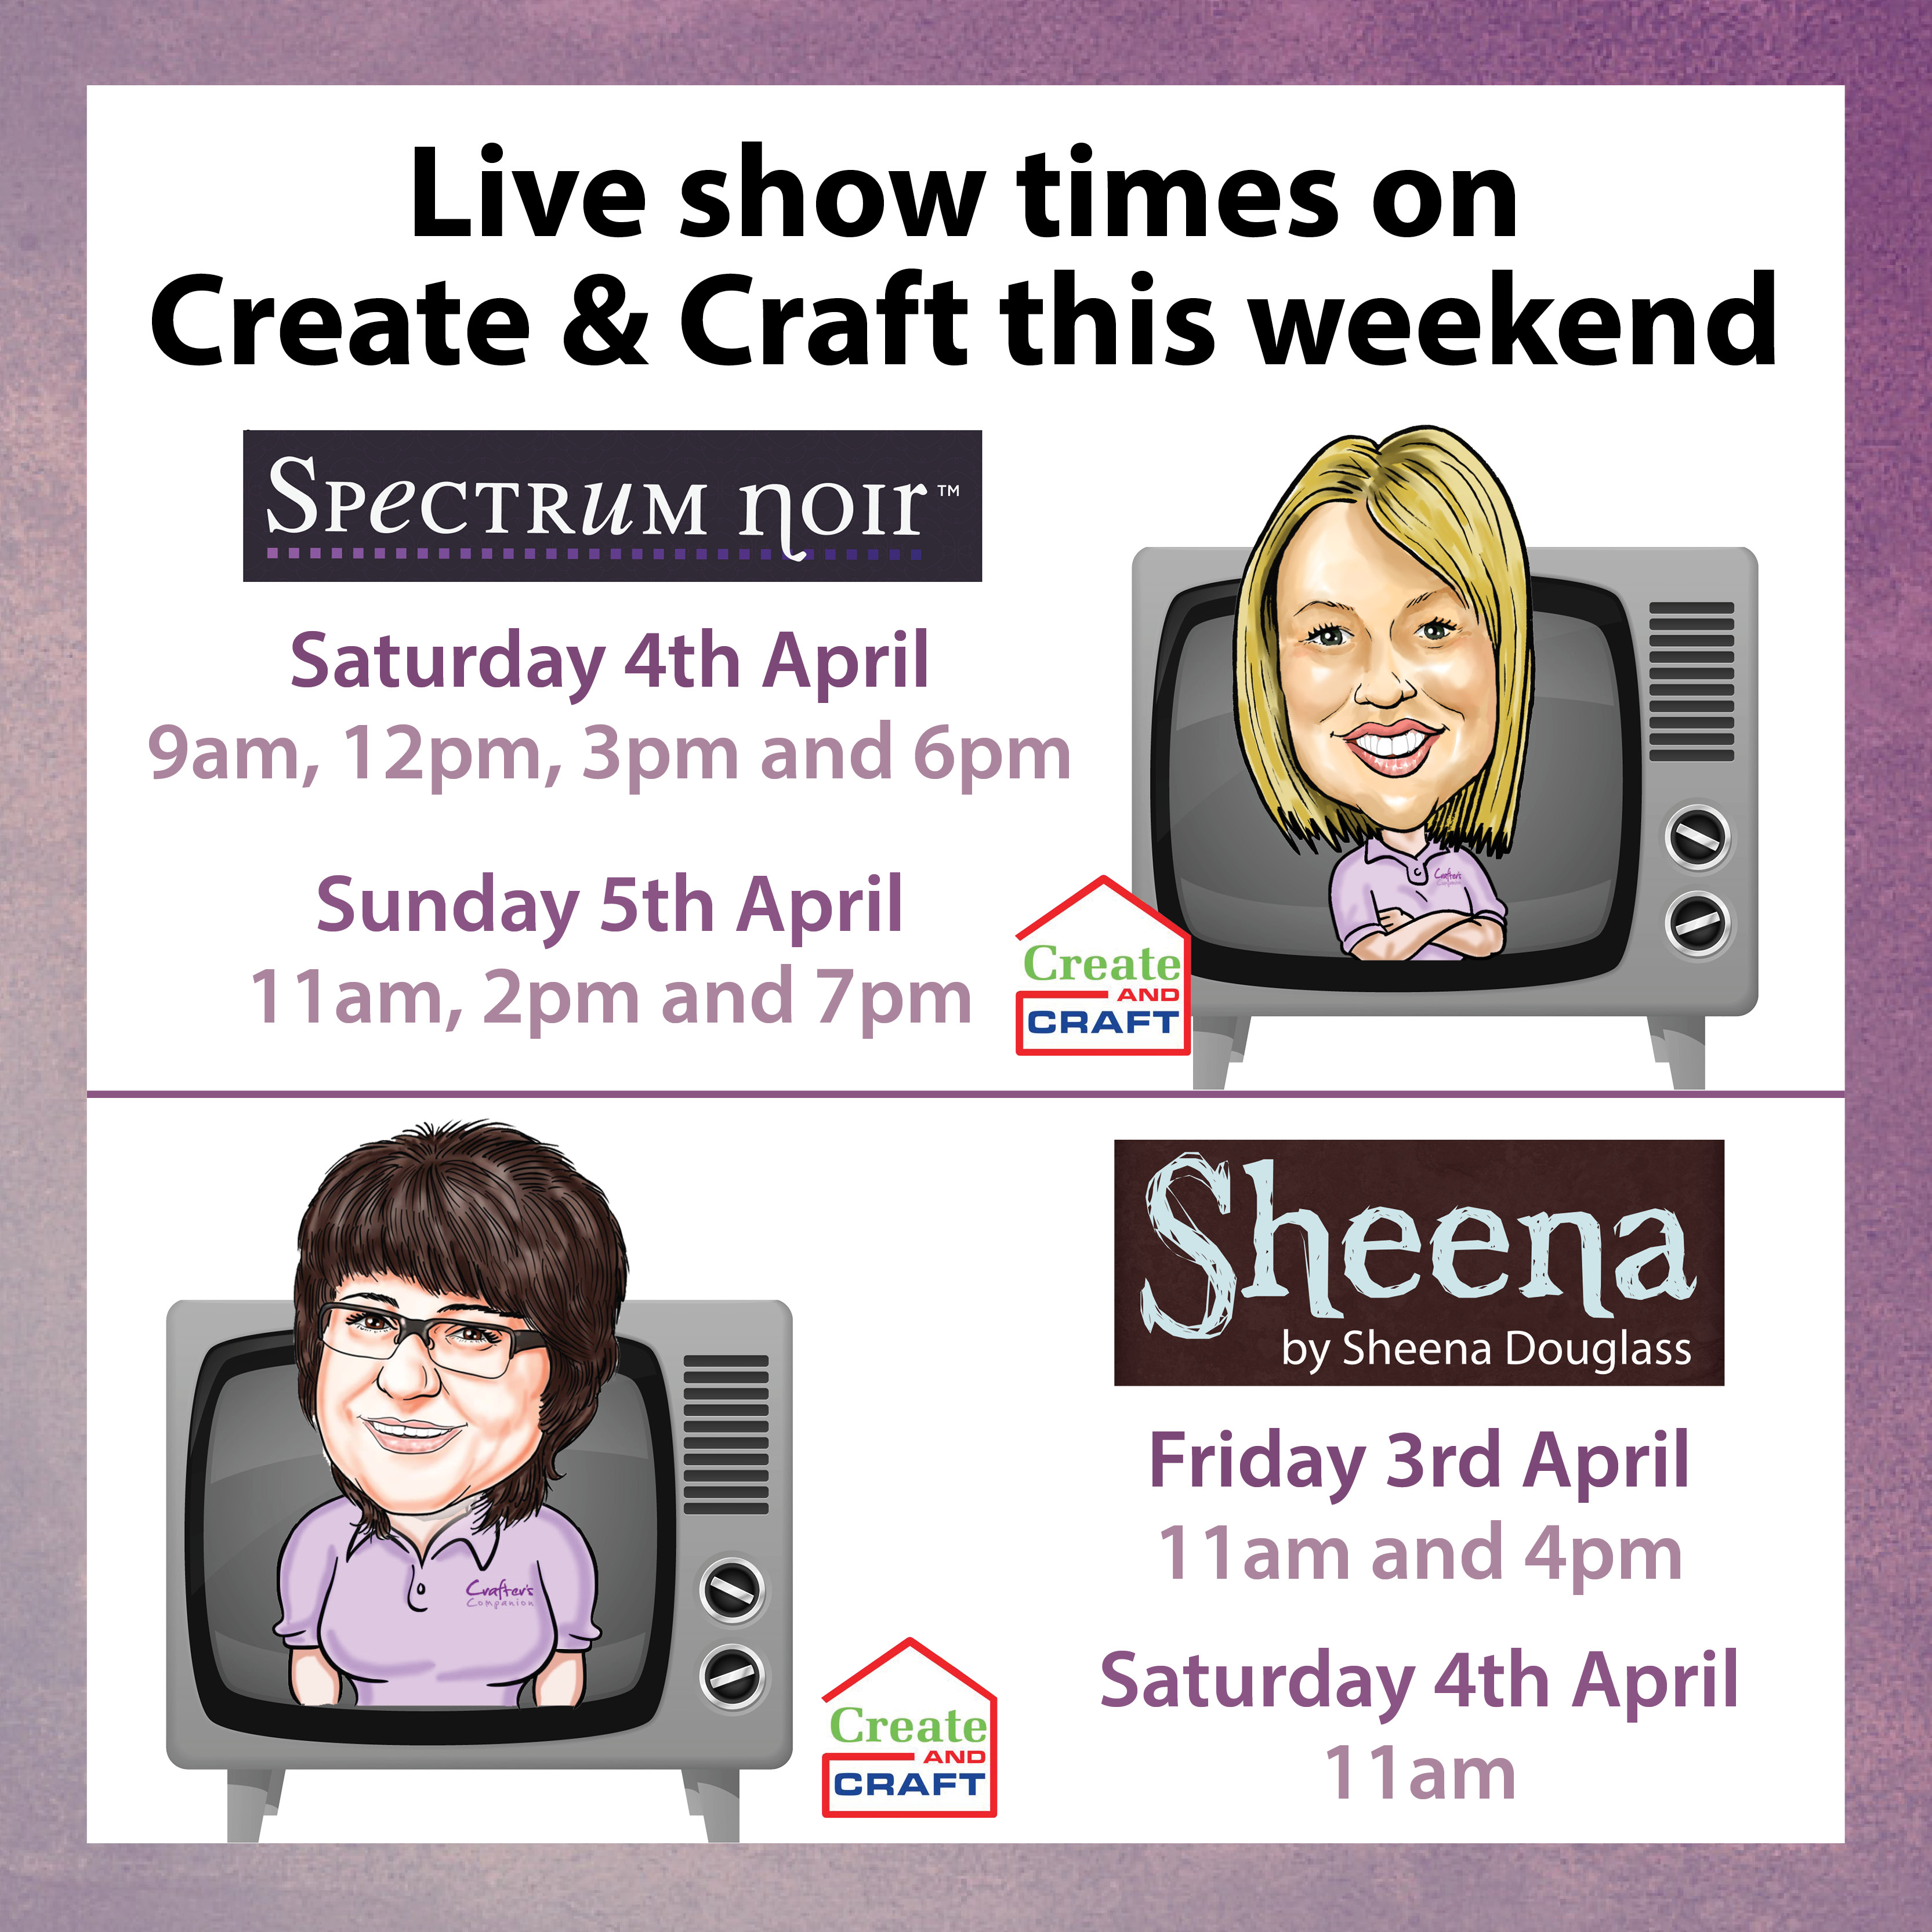 C&C Easter show times